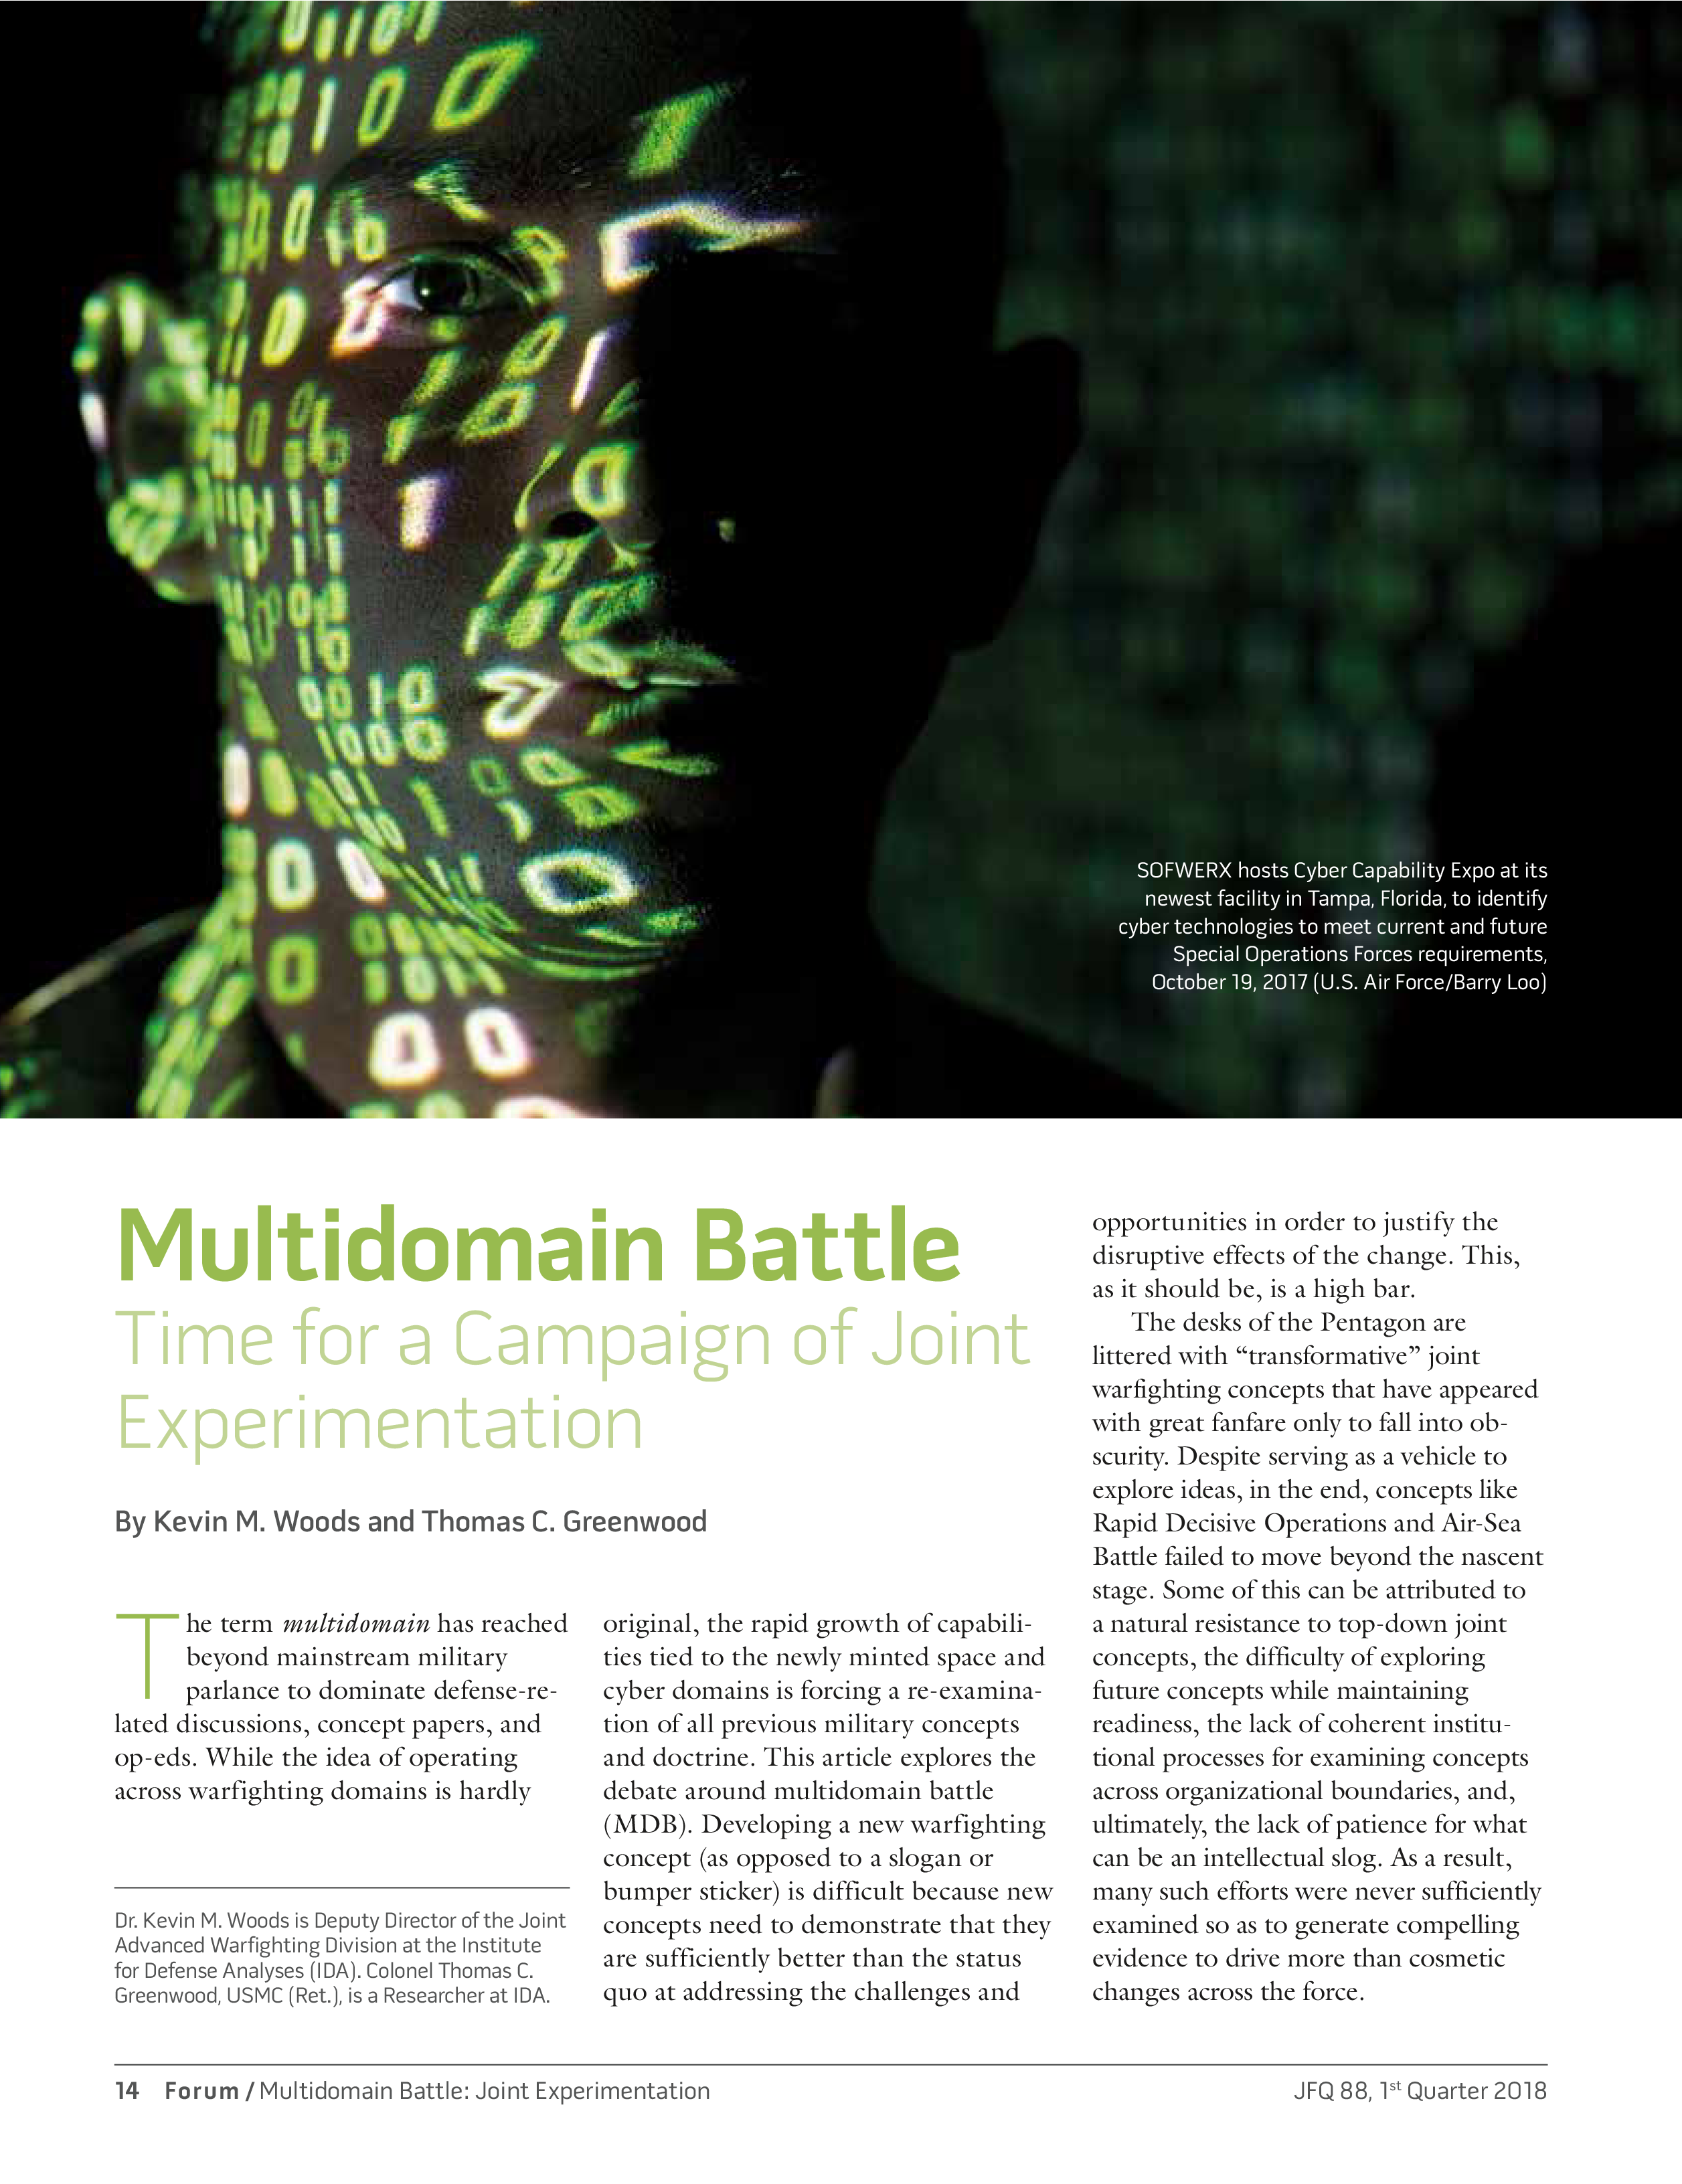 Multi-Domain Battle: Time for a Campaign of Joint Experimentation